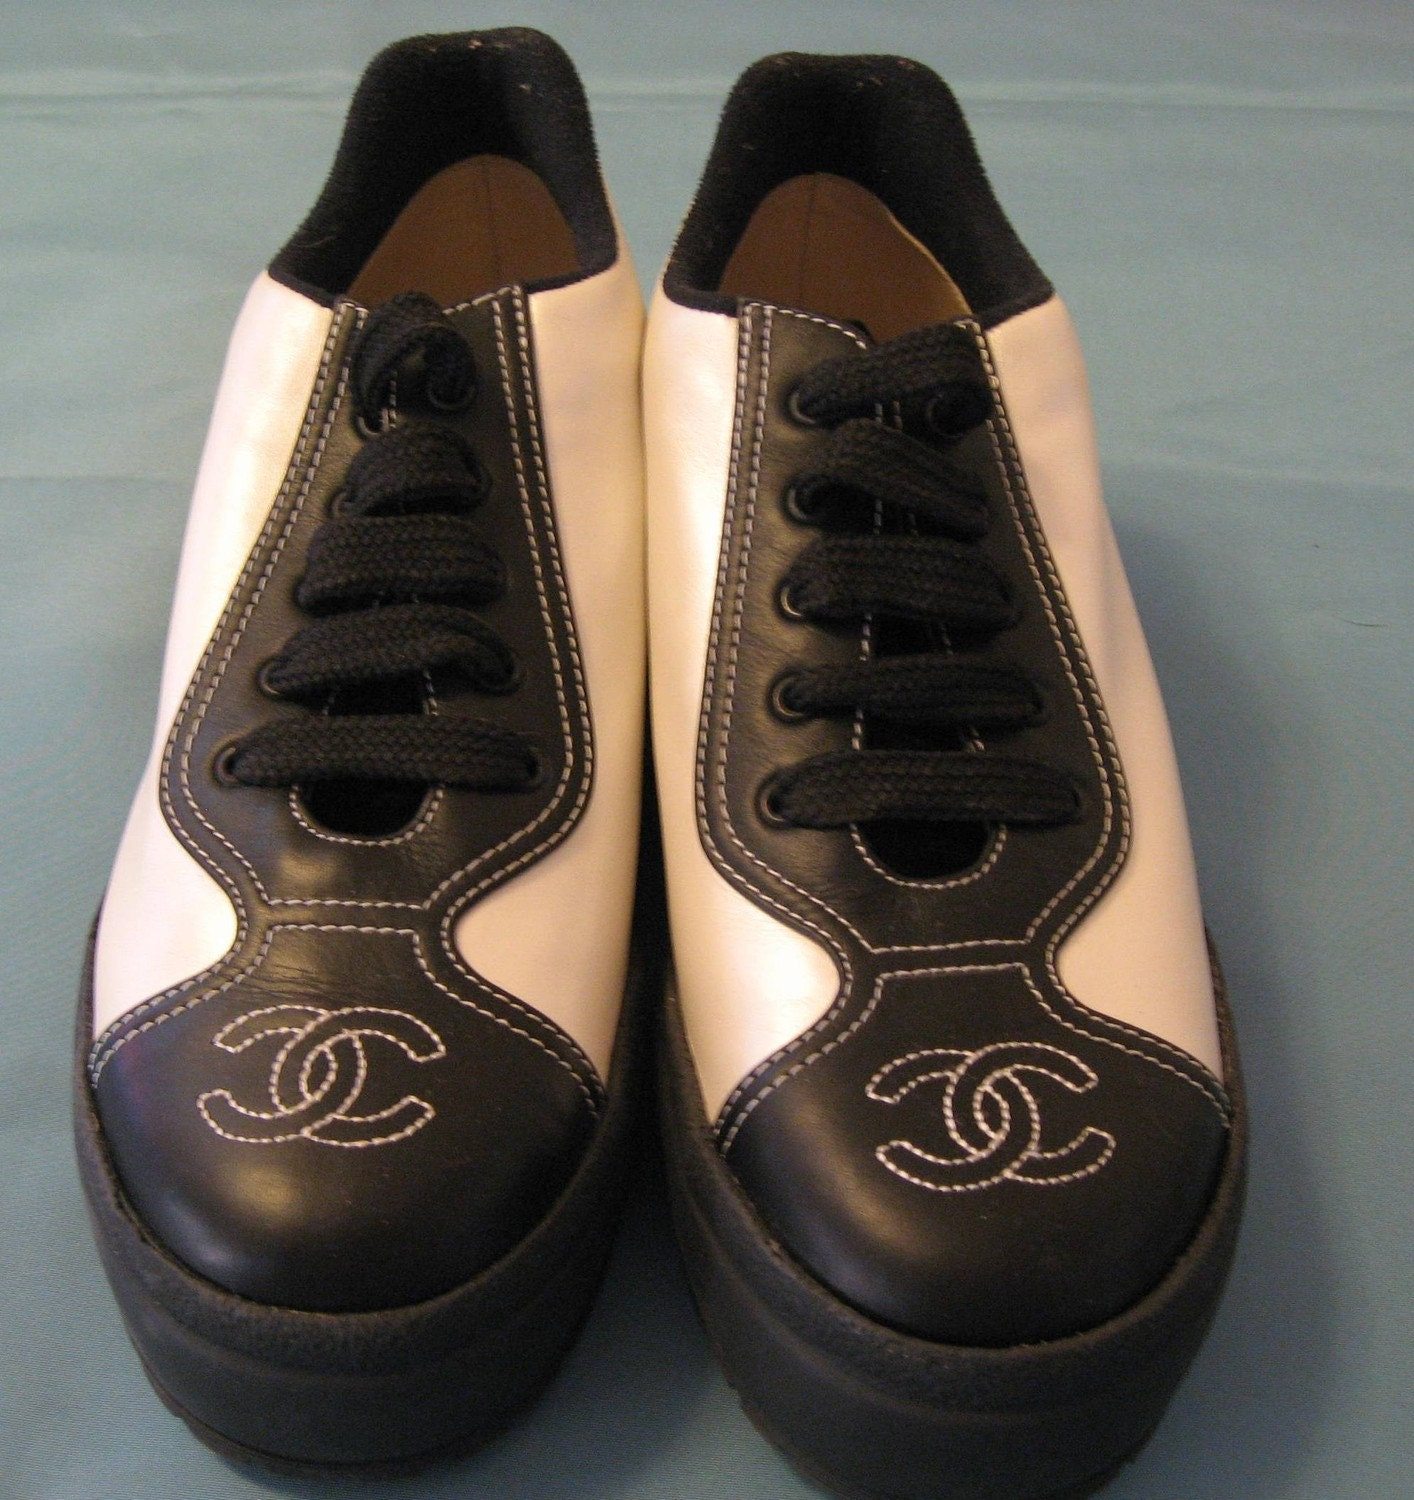 chanel black white tennis shoes by spottyd on etsy